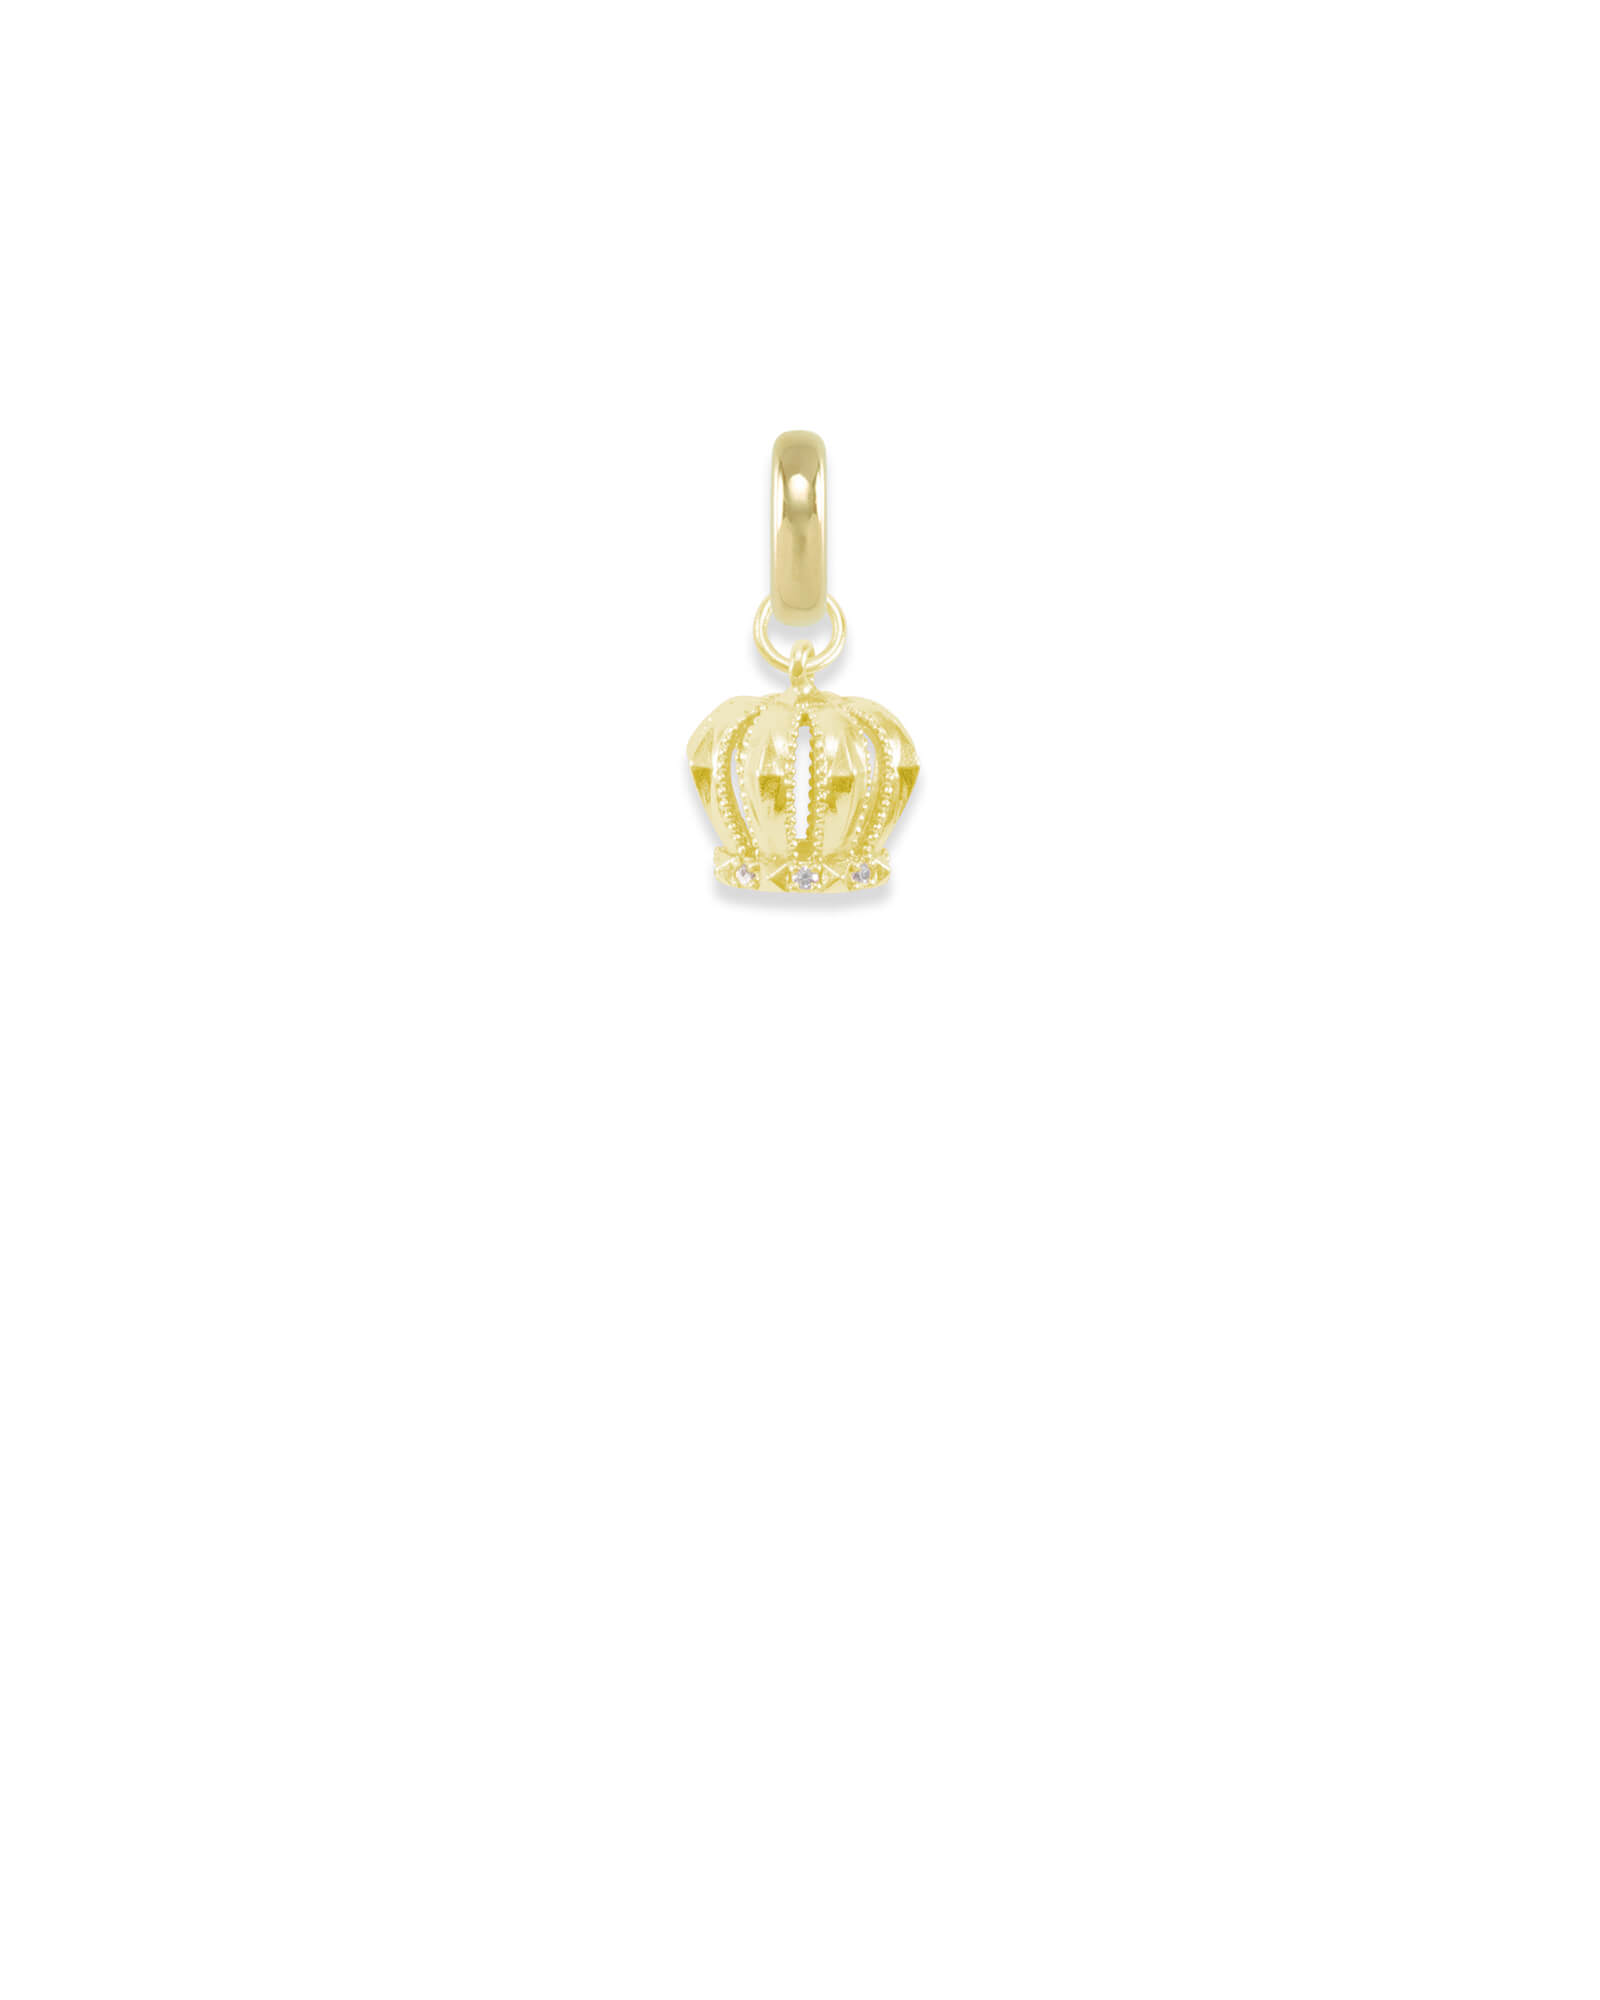 London Crown Charm in Gold